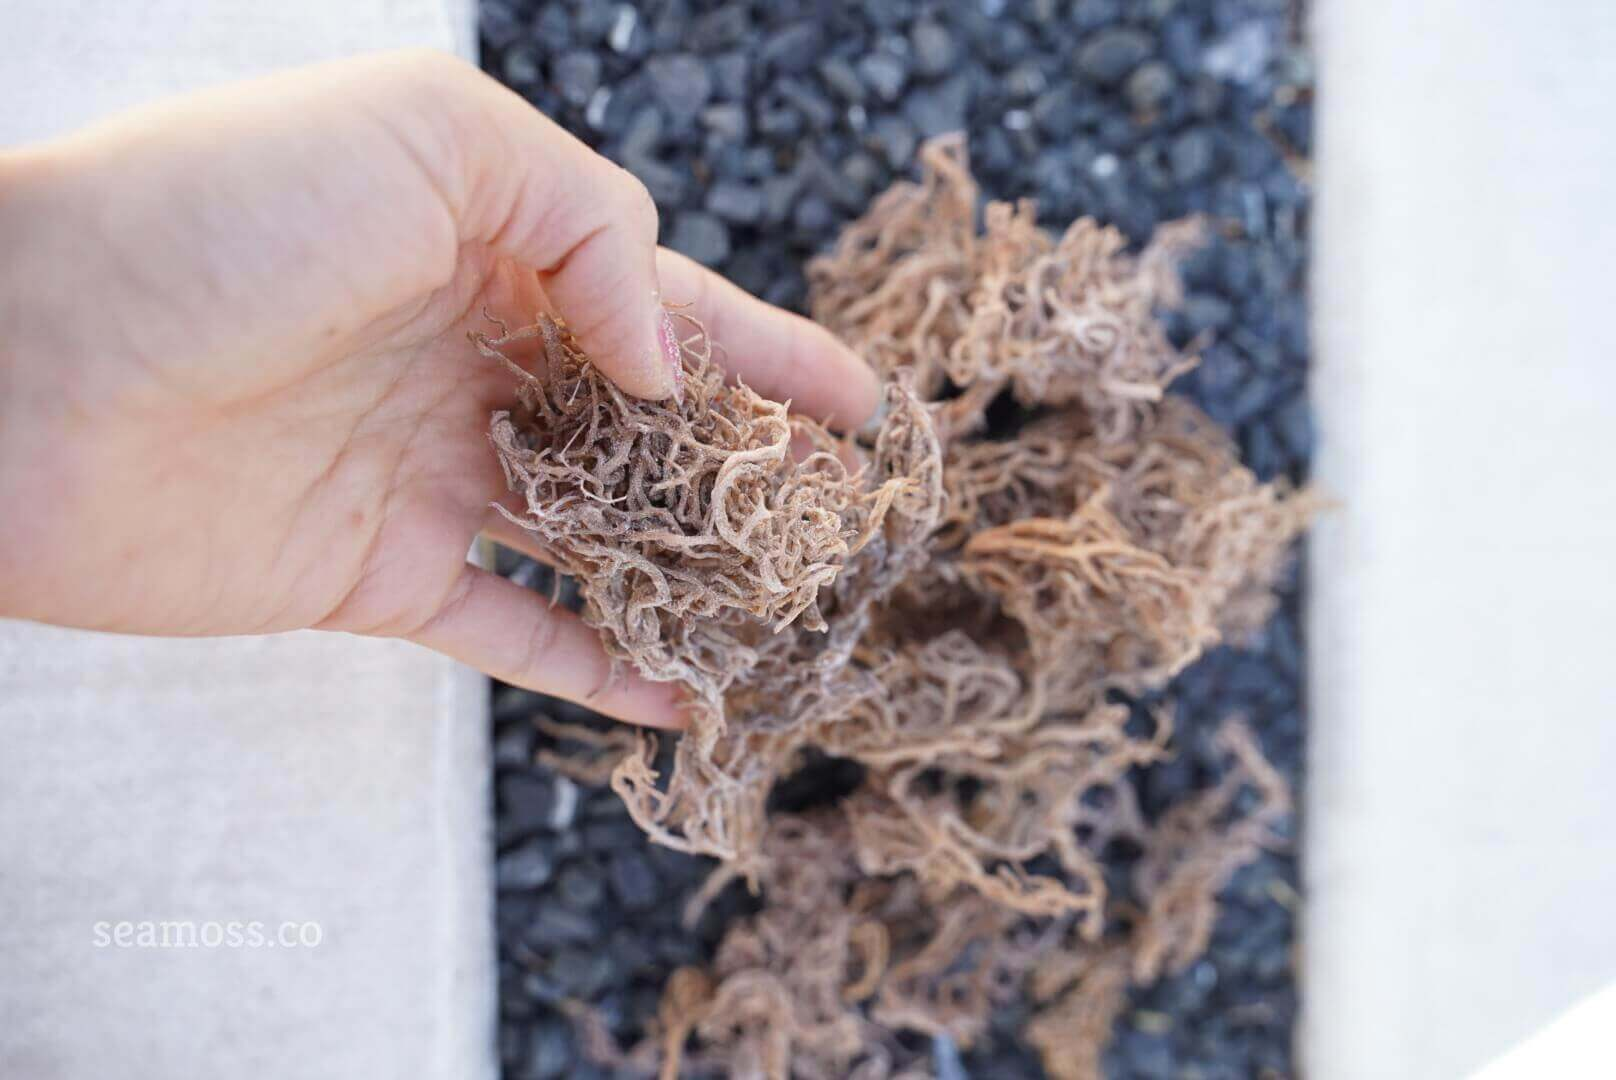 Sea Moss help above crystals